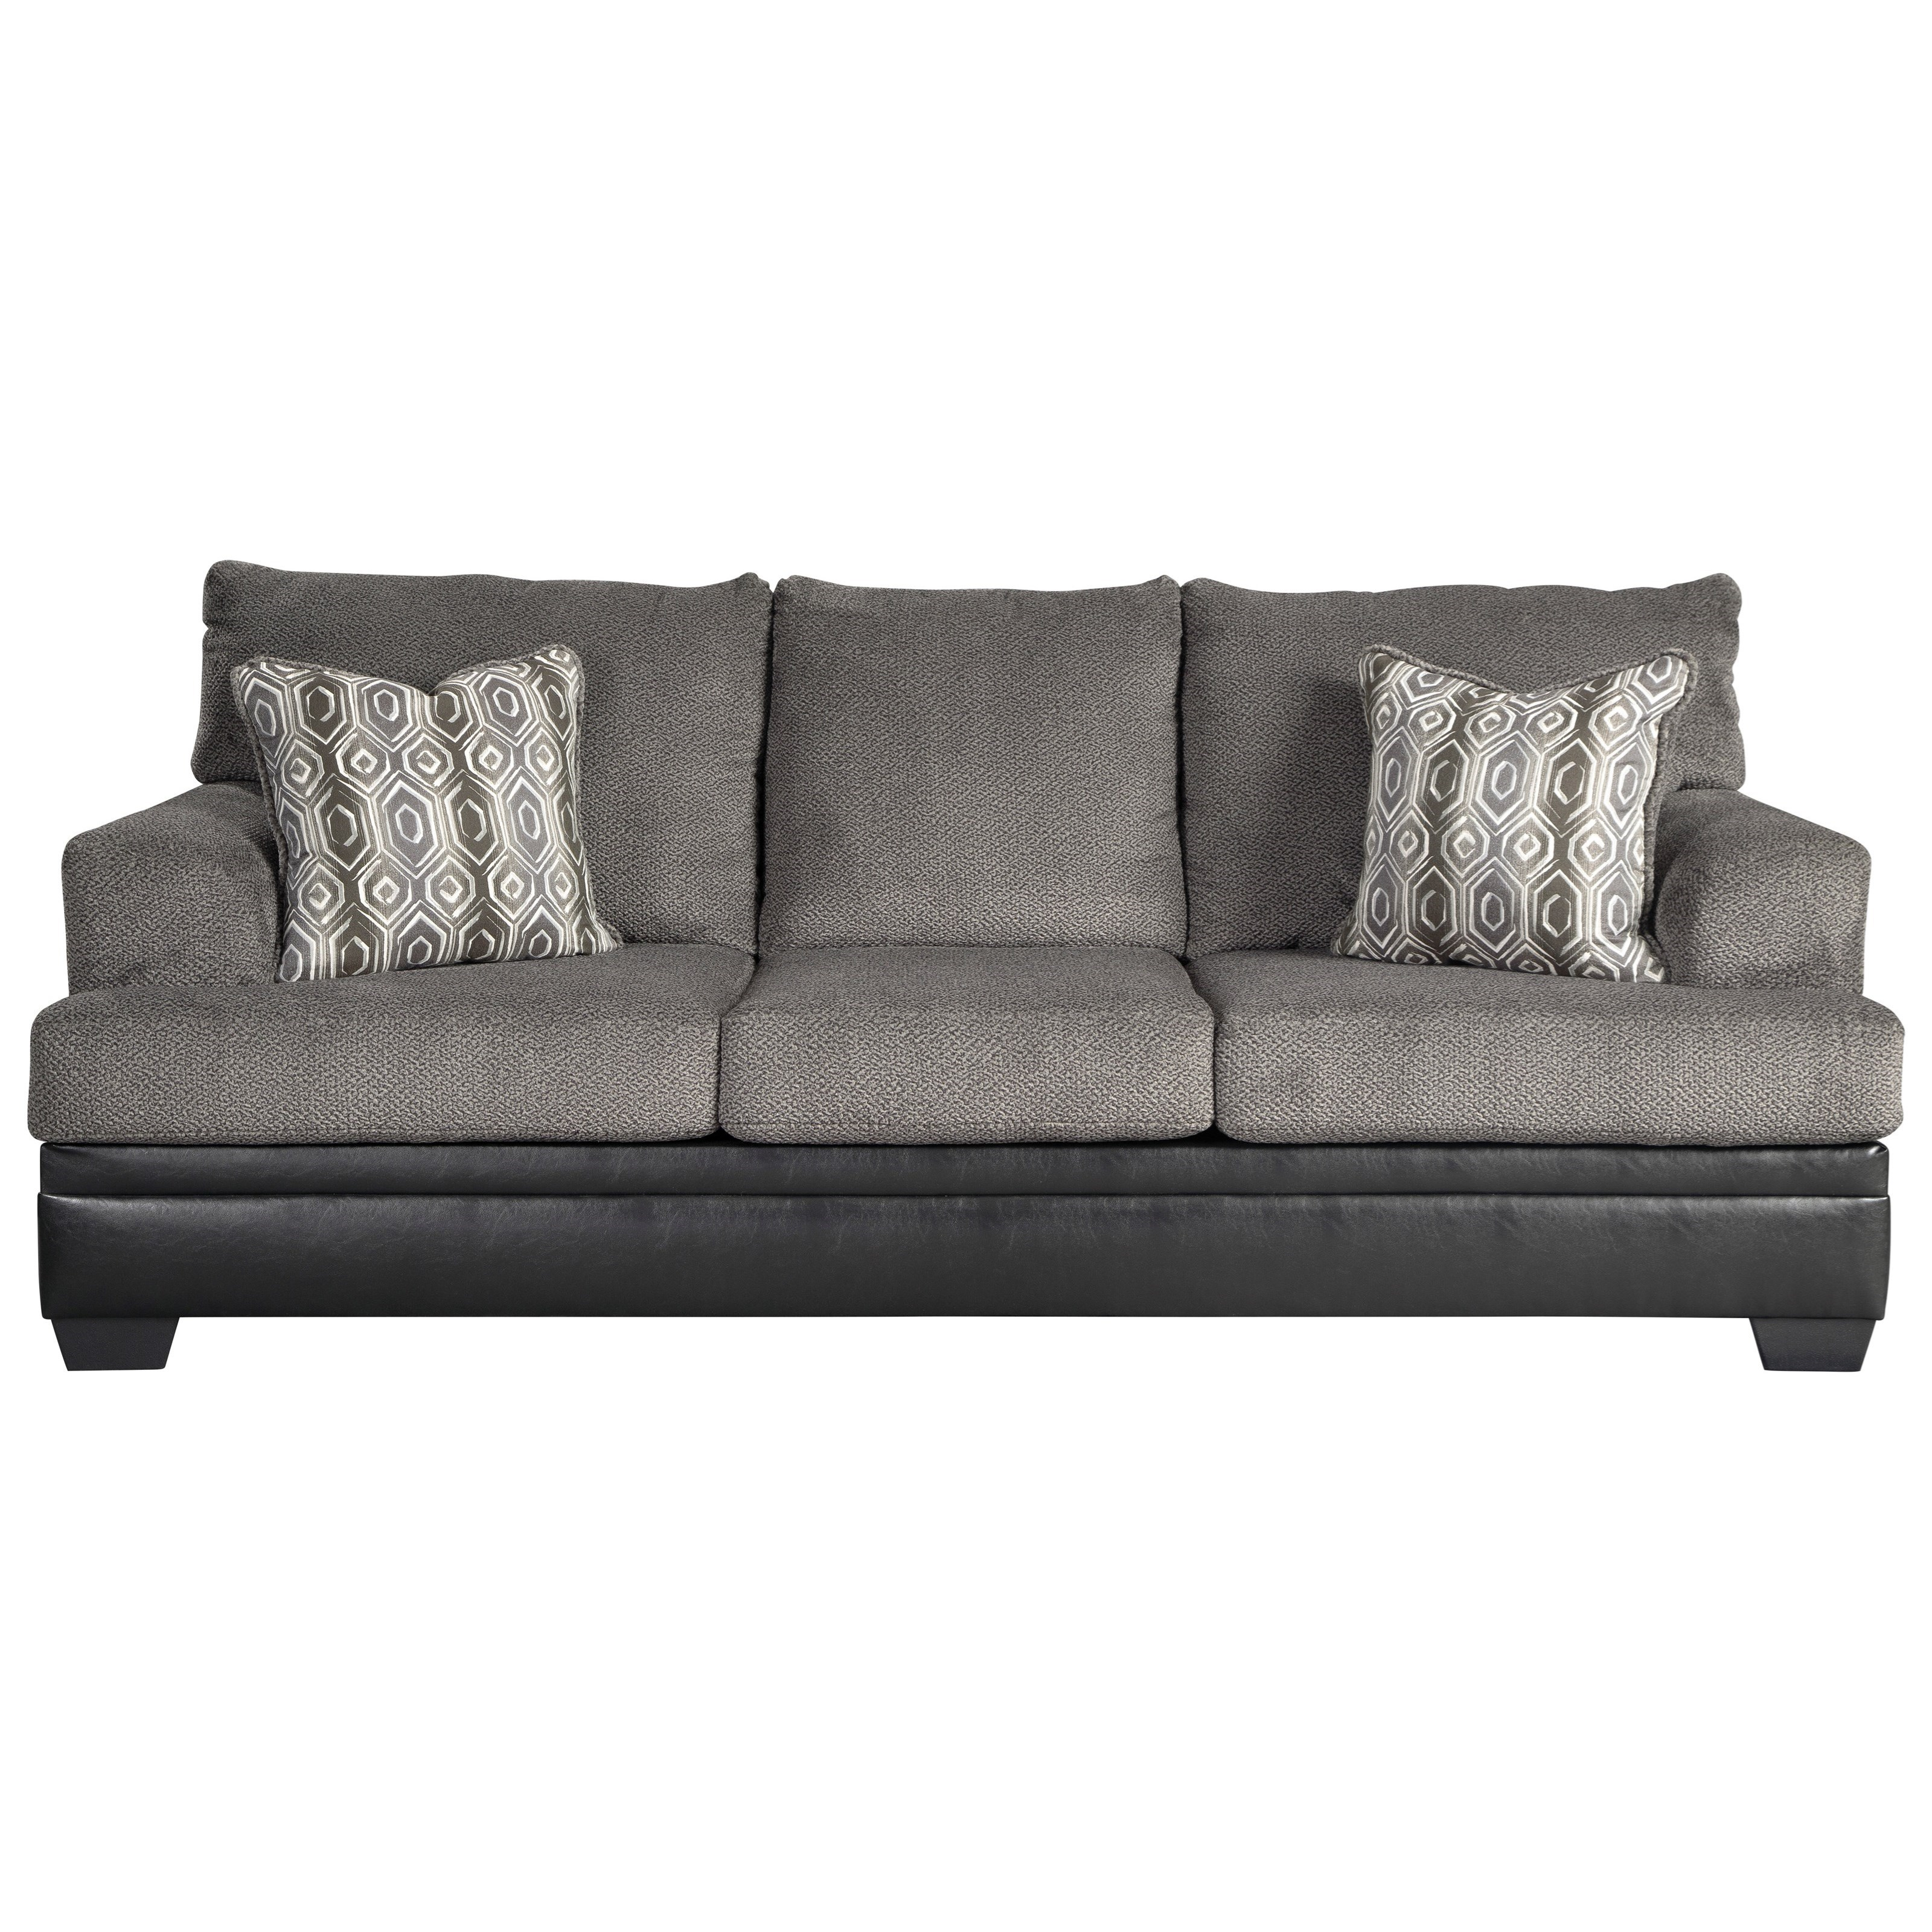 Millingar Sofa by Signature Design by Ashley at Northeast Factory Direct